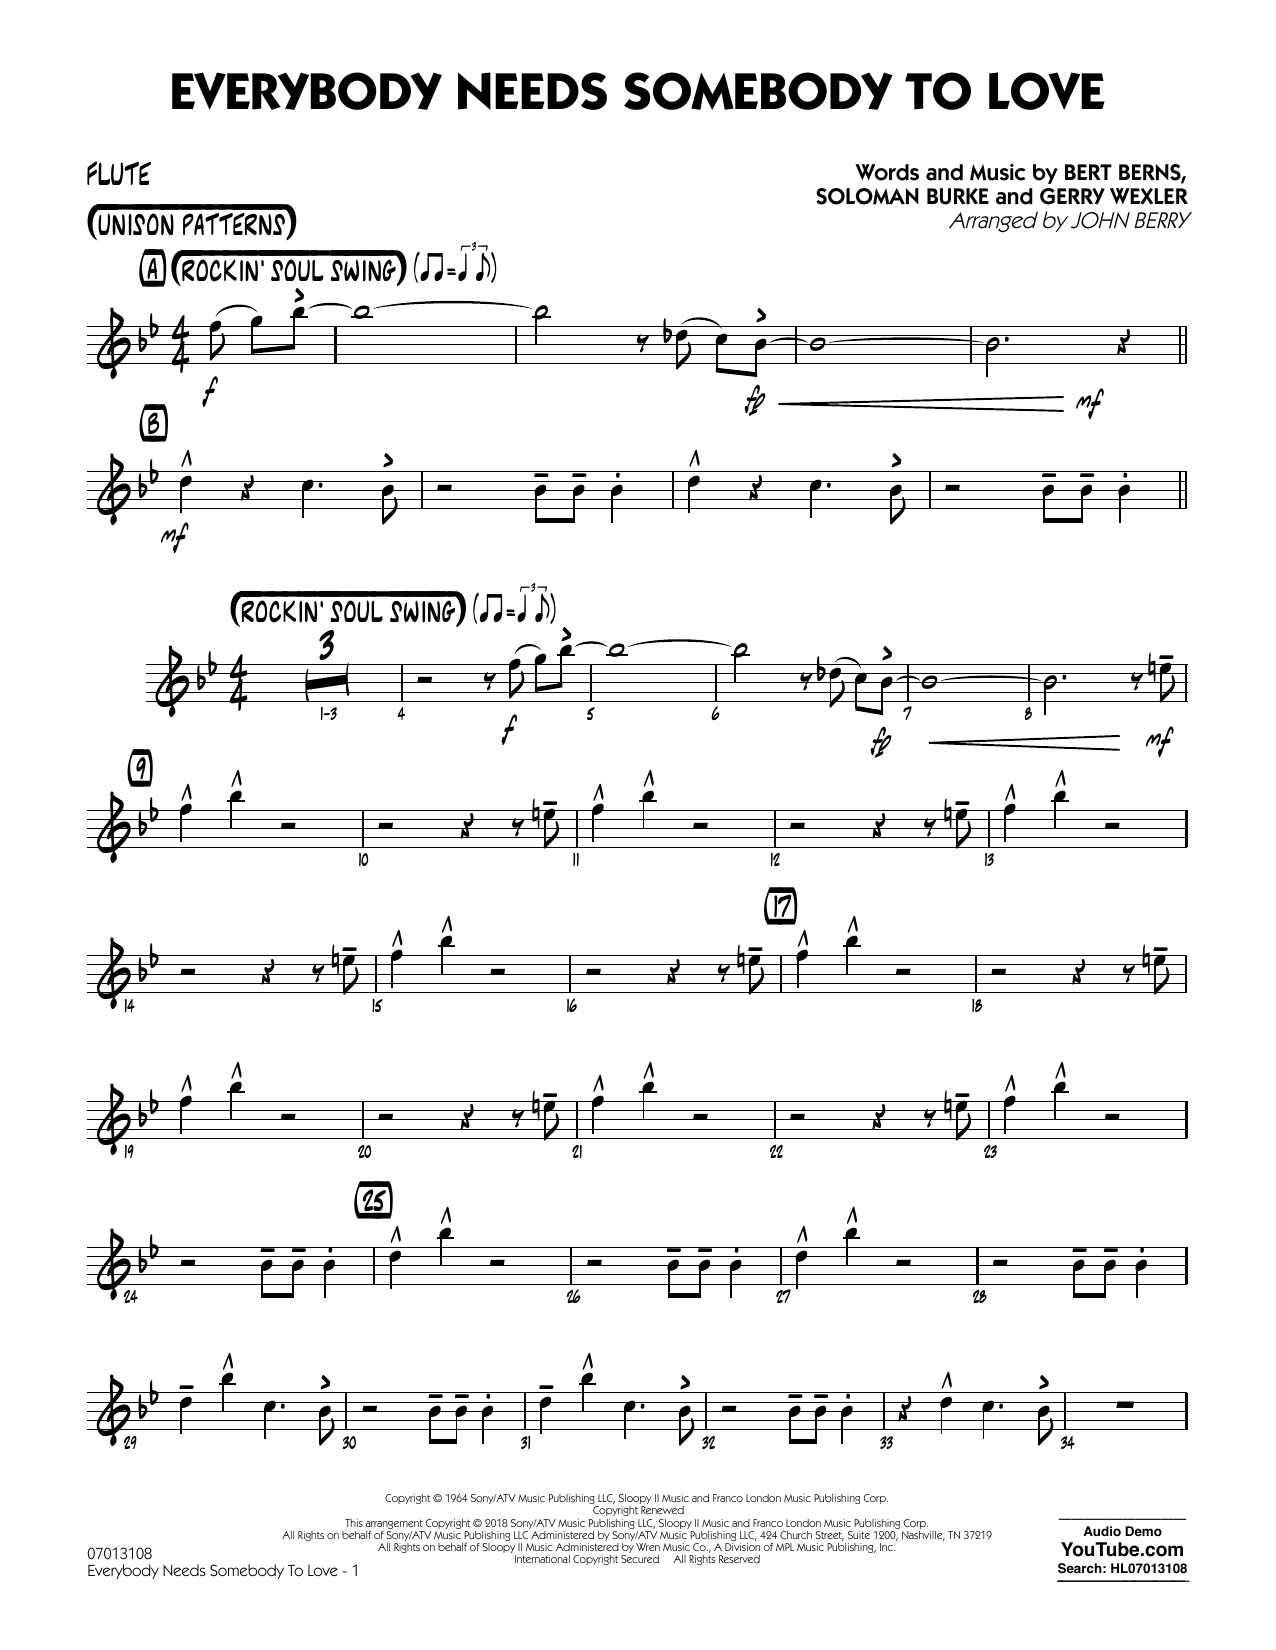 Everybody Needs Somebody to Love - Flute Partituras Digitales